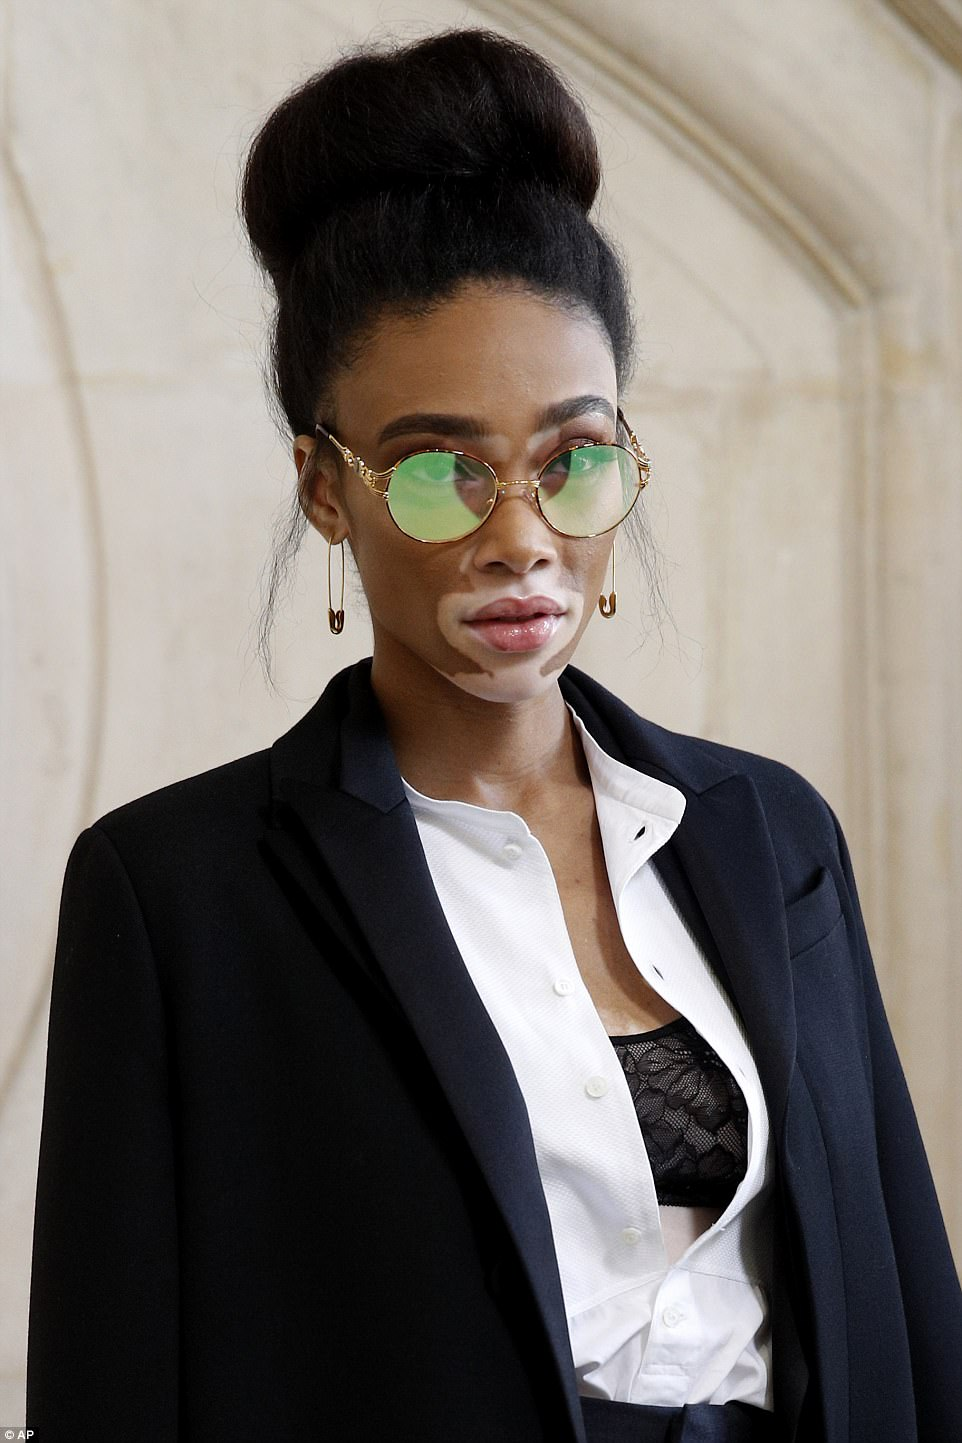 Touch of quirkiness: Winnie kept with the gold theme with her safety-pin style earrings and kooky vintage sunnies, while the rest of her locks were piled into an immaculate bun